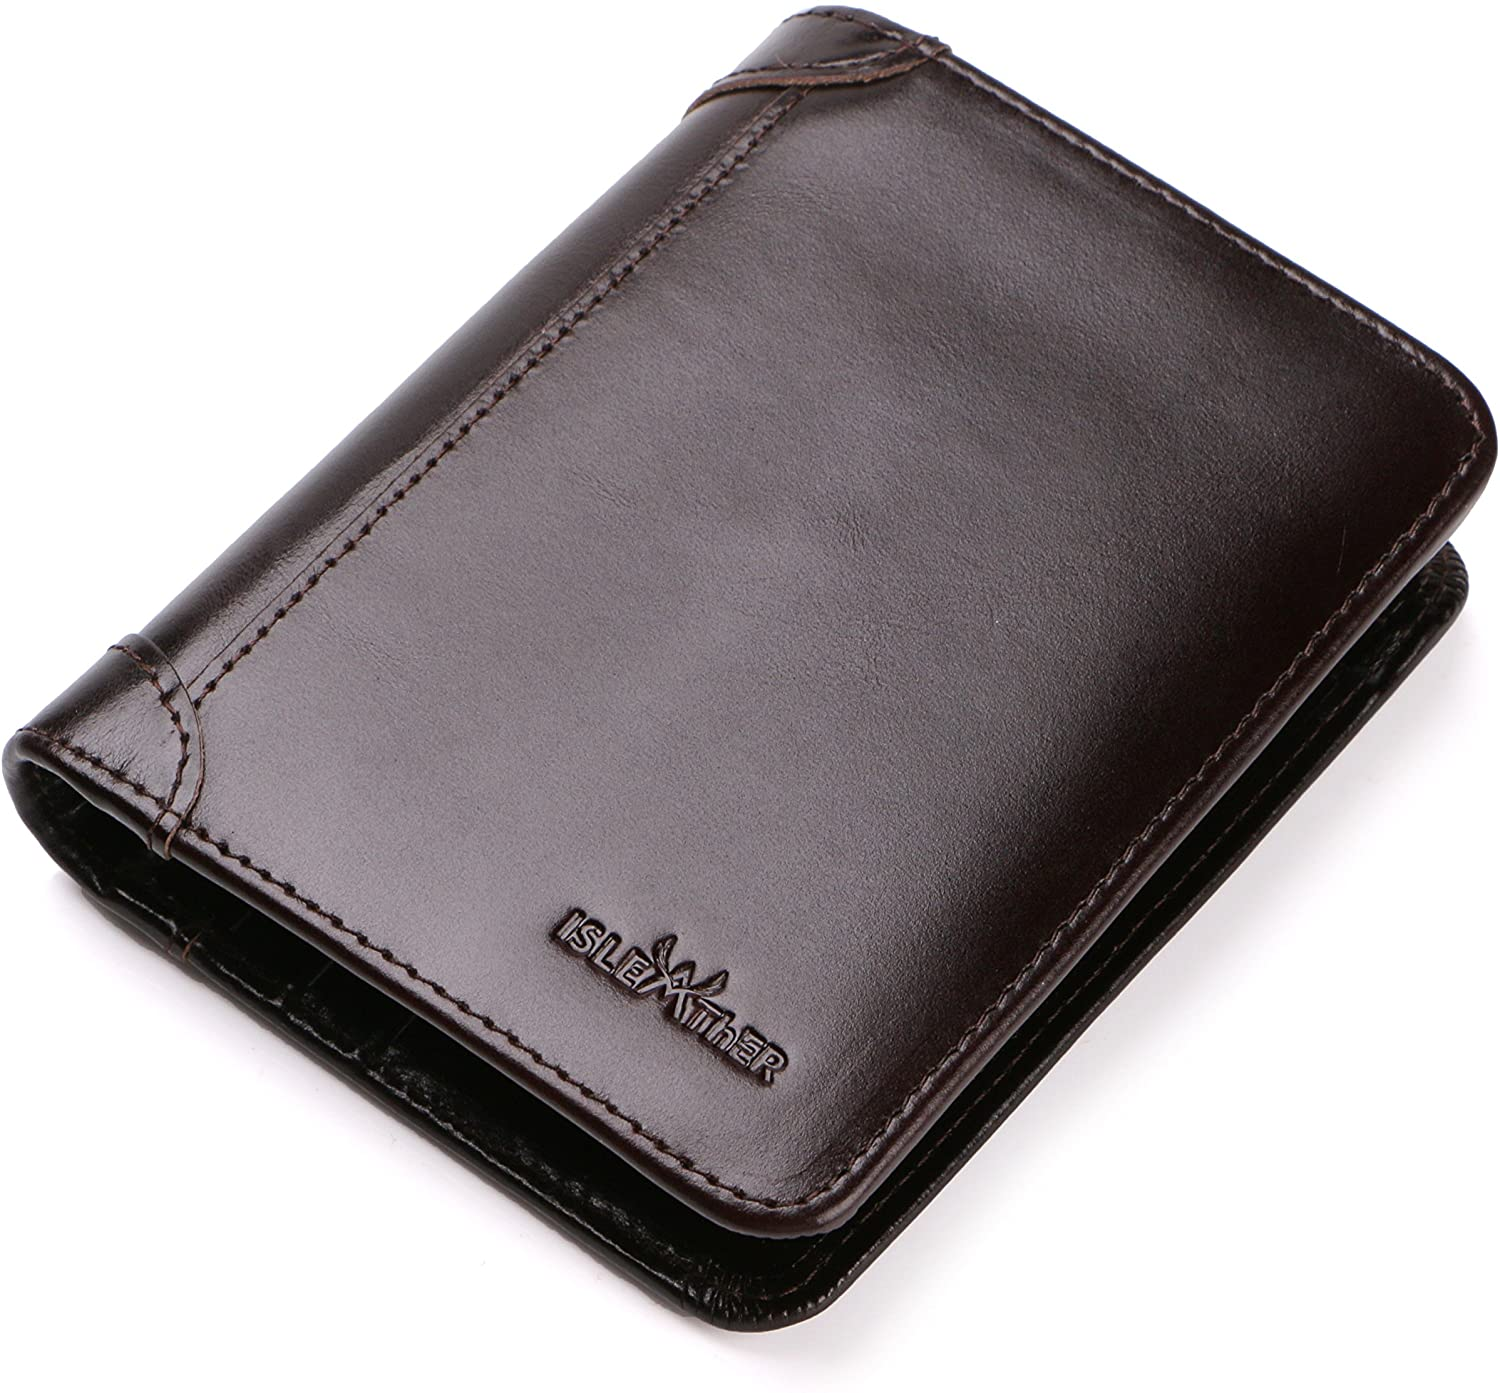 RFID Blocking Trifold Bifold Slim Extra Capacity Genuine Leather Wallet for Men